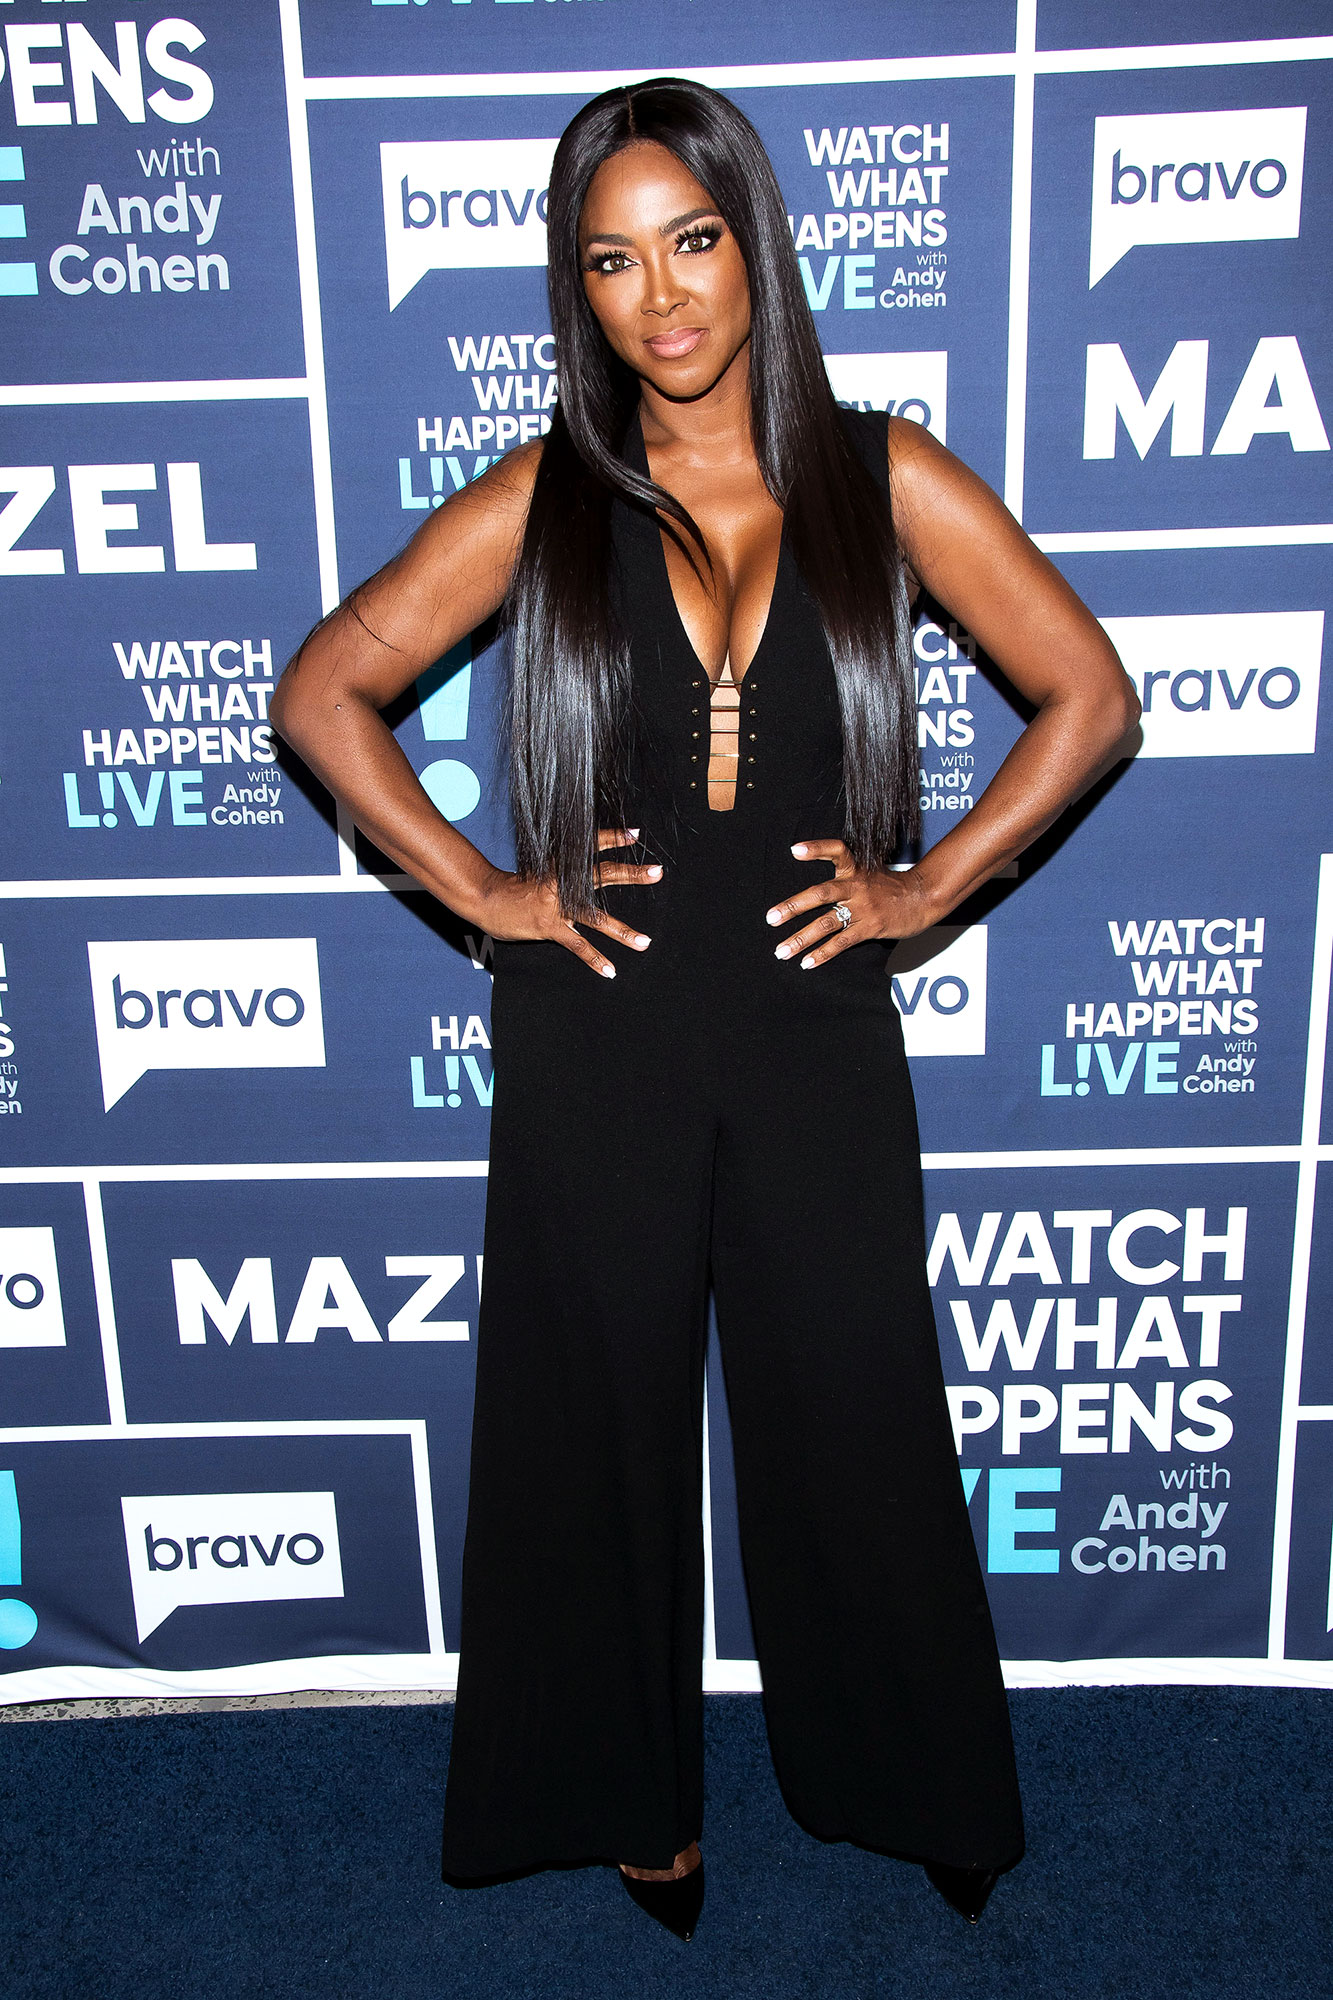 Rhoa Alum Kenya Moore Shows Off Her Abs 3 Weeks After Giving Birth Wstale Com